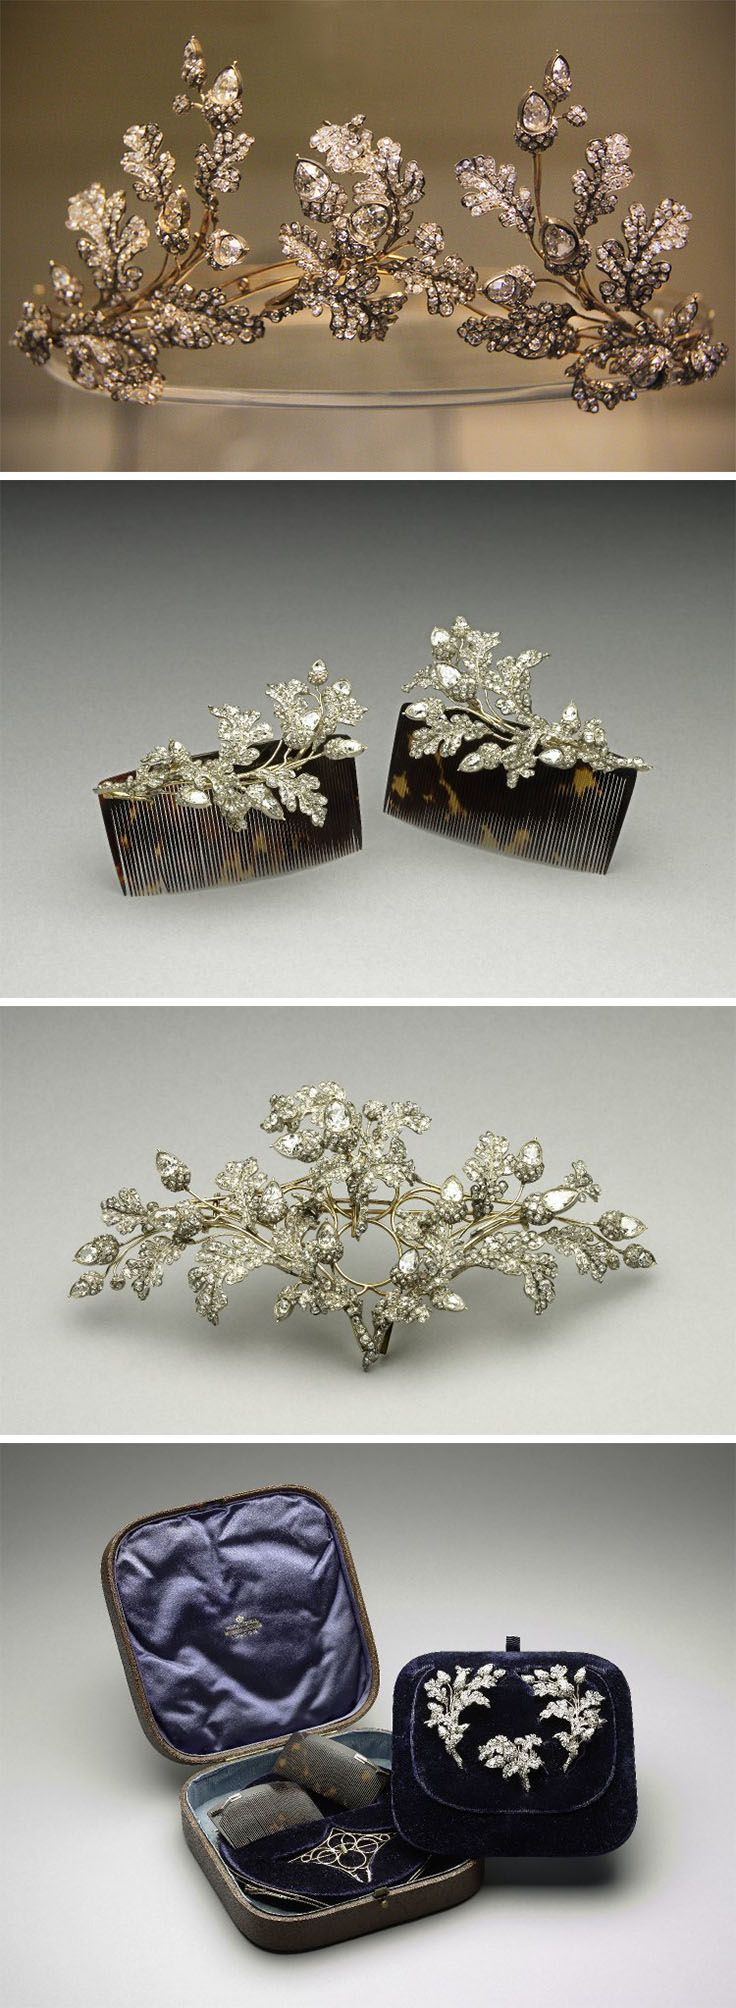 Tiara in three pieces in the form of branches of oak-leaves and acorns. ca. 1855. England. Silver and gold, open-back, set with diamonds and convertible to a brooch or to use as comb-mounts. In the original case labelled Hunt & Roskell. In the case are two tortoise-shell combs and gold frames for the tiara and brooch. The jewelled elements are interchangeable between the combs, the brooch-frame and the tiara. The lid of the case is stamped with a Viscount's coronet and the initials 'MP'.